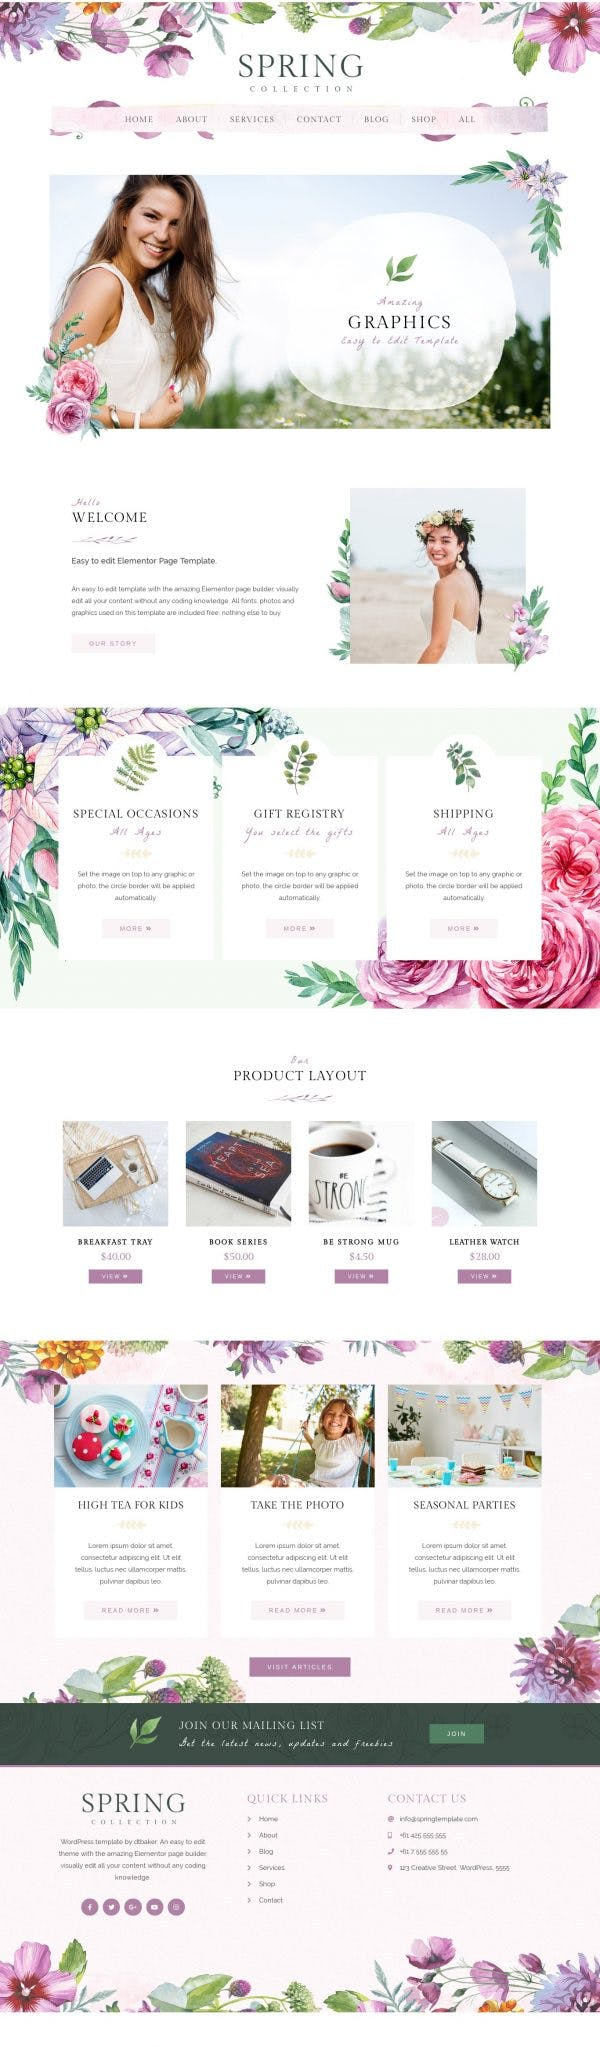 Spring Watercolor and Floral Template Kit - 2